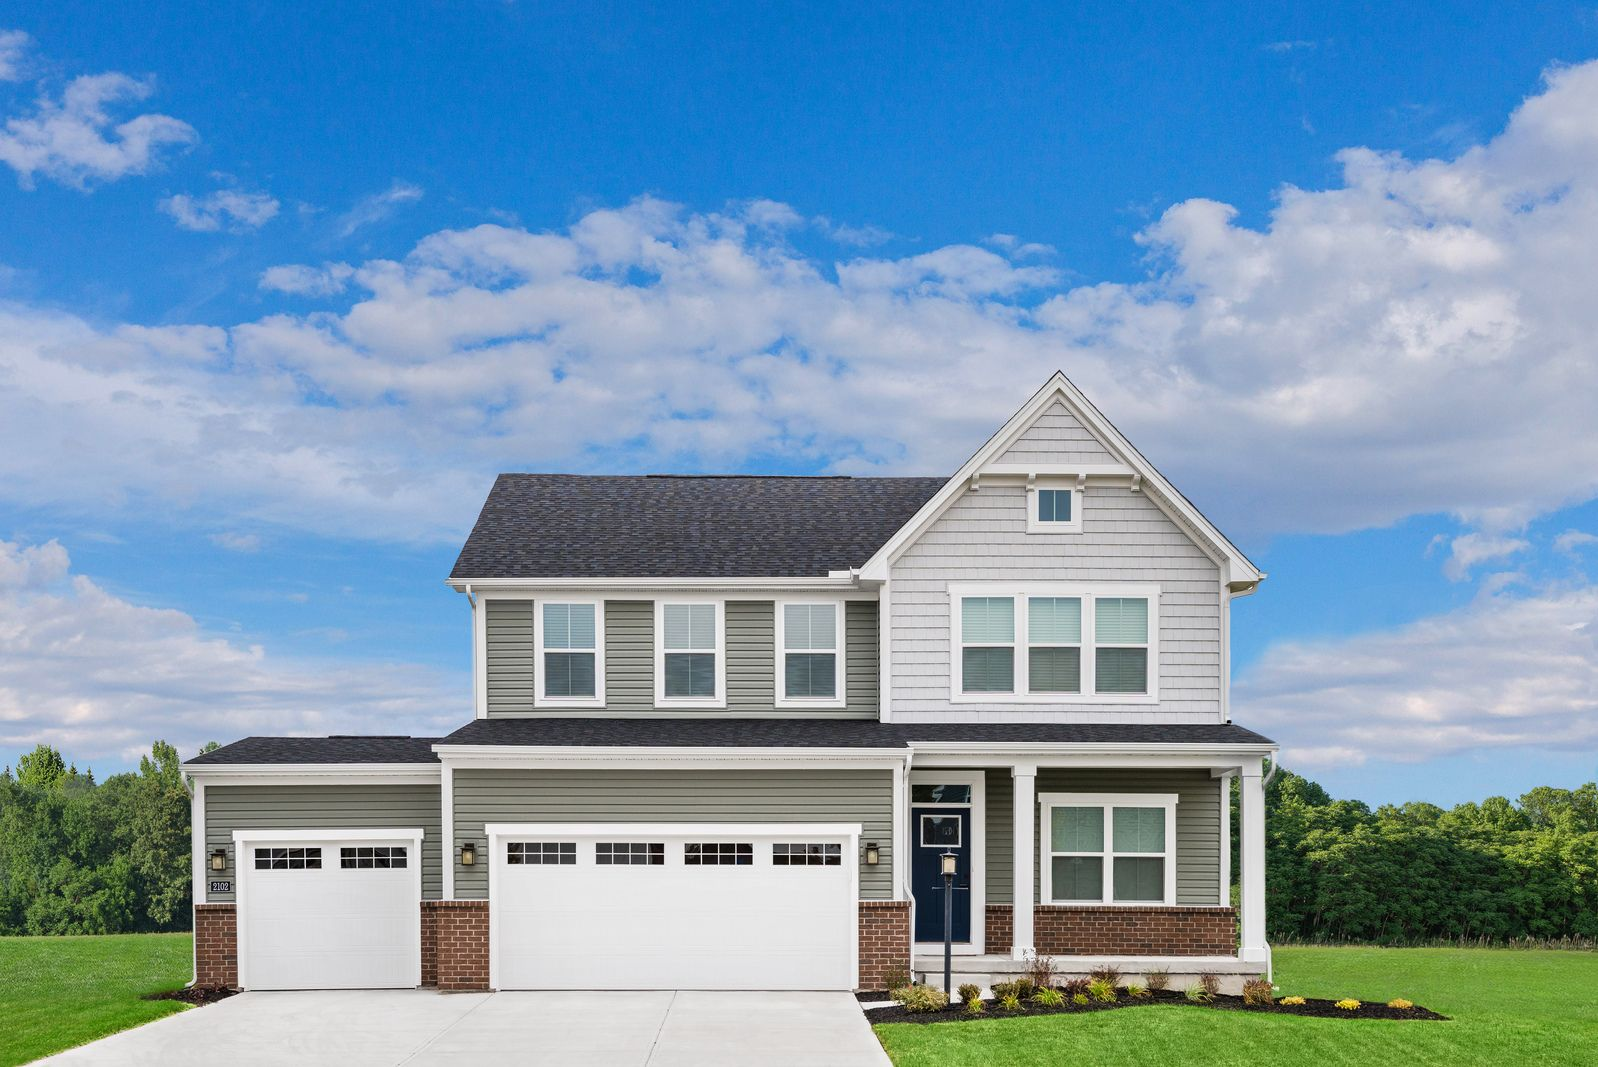 WELCOME HOME TO CRANBERRY CREEK:Brimfield Township's only new construction 2-story and ranch community with luxury features included! Scenic rural-like setting.Click here to schedule your visit today!